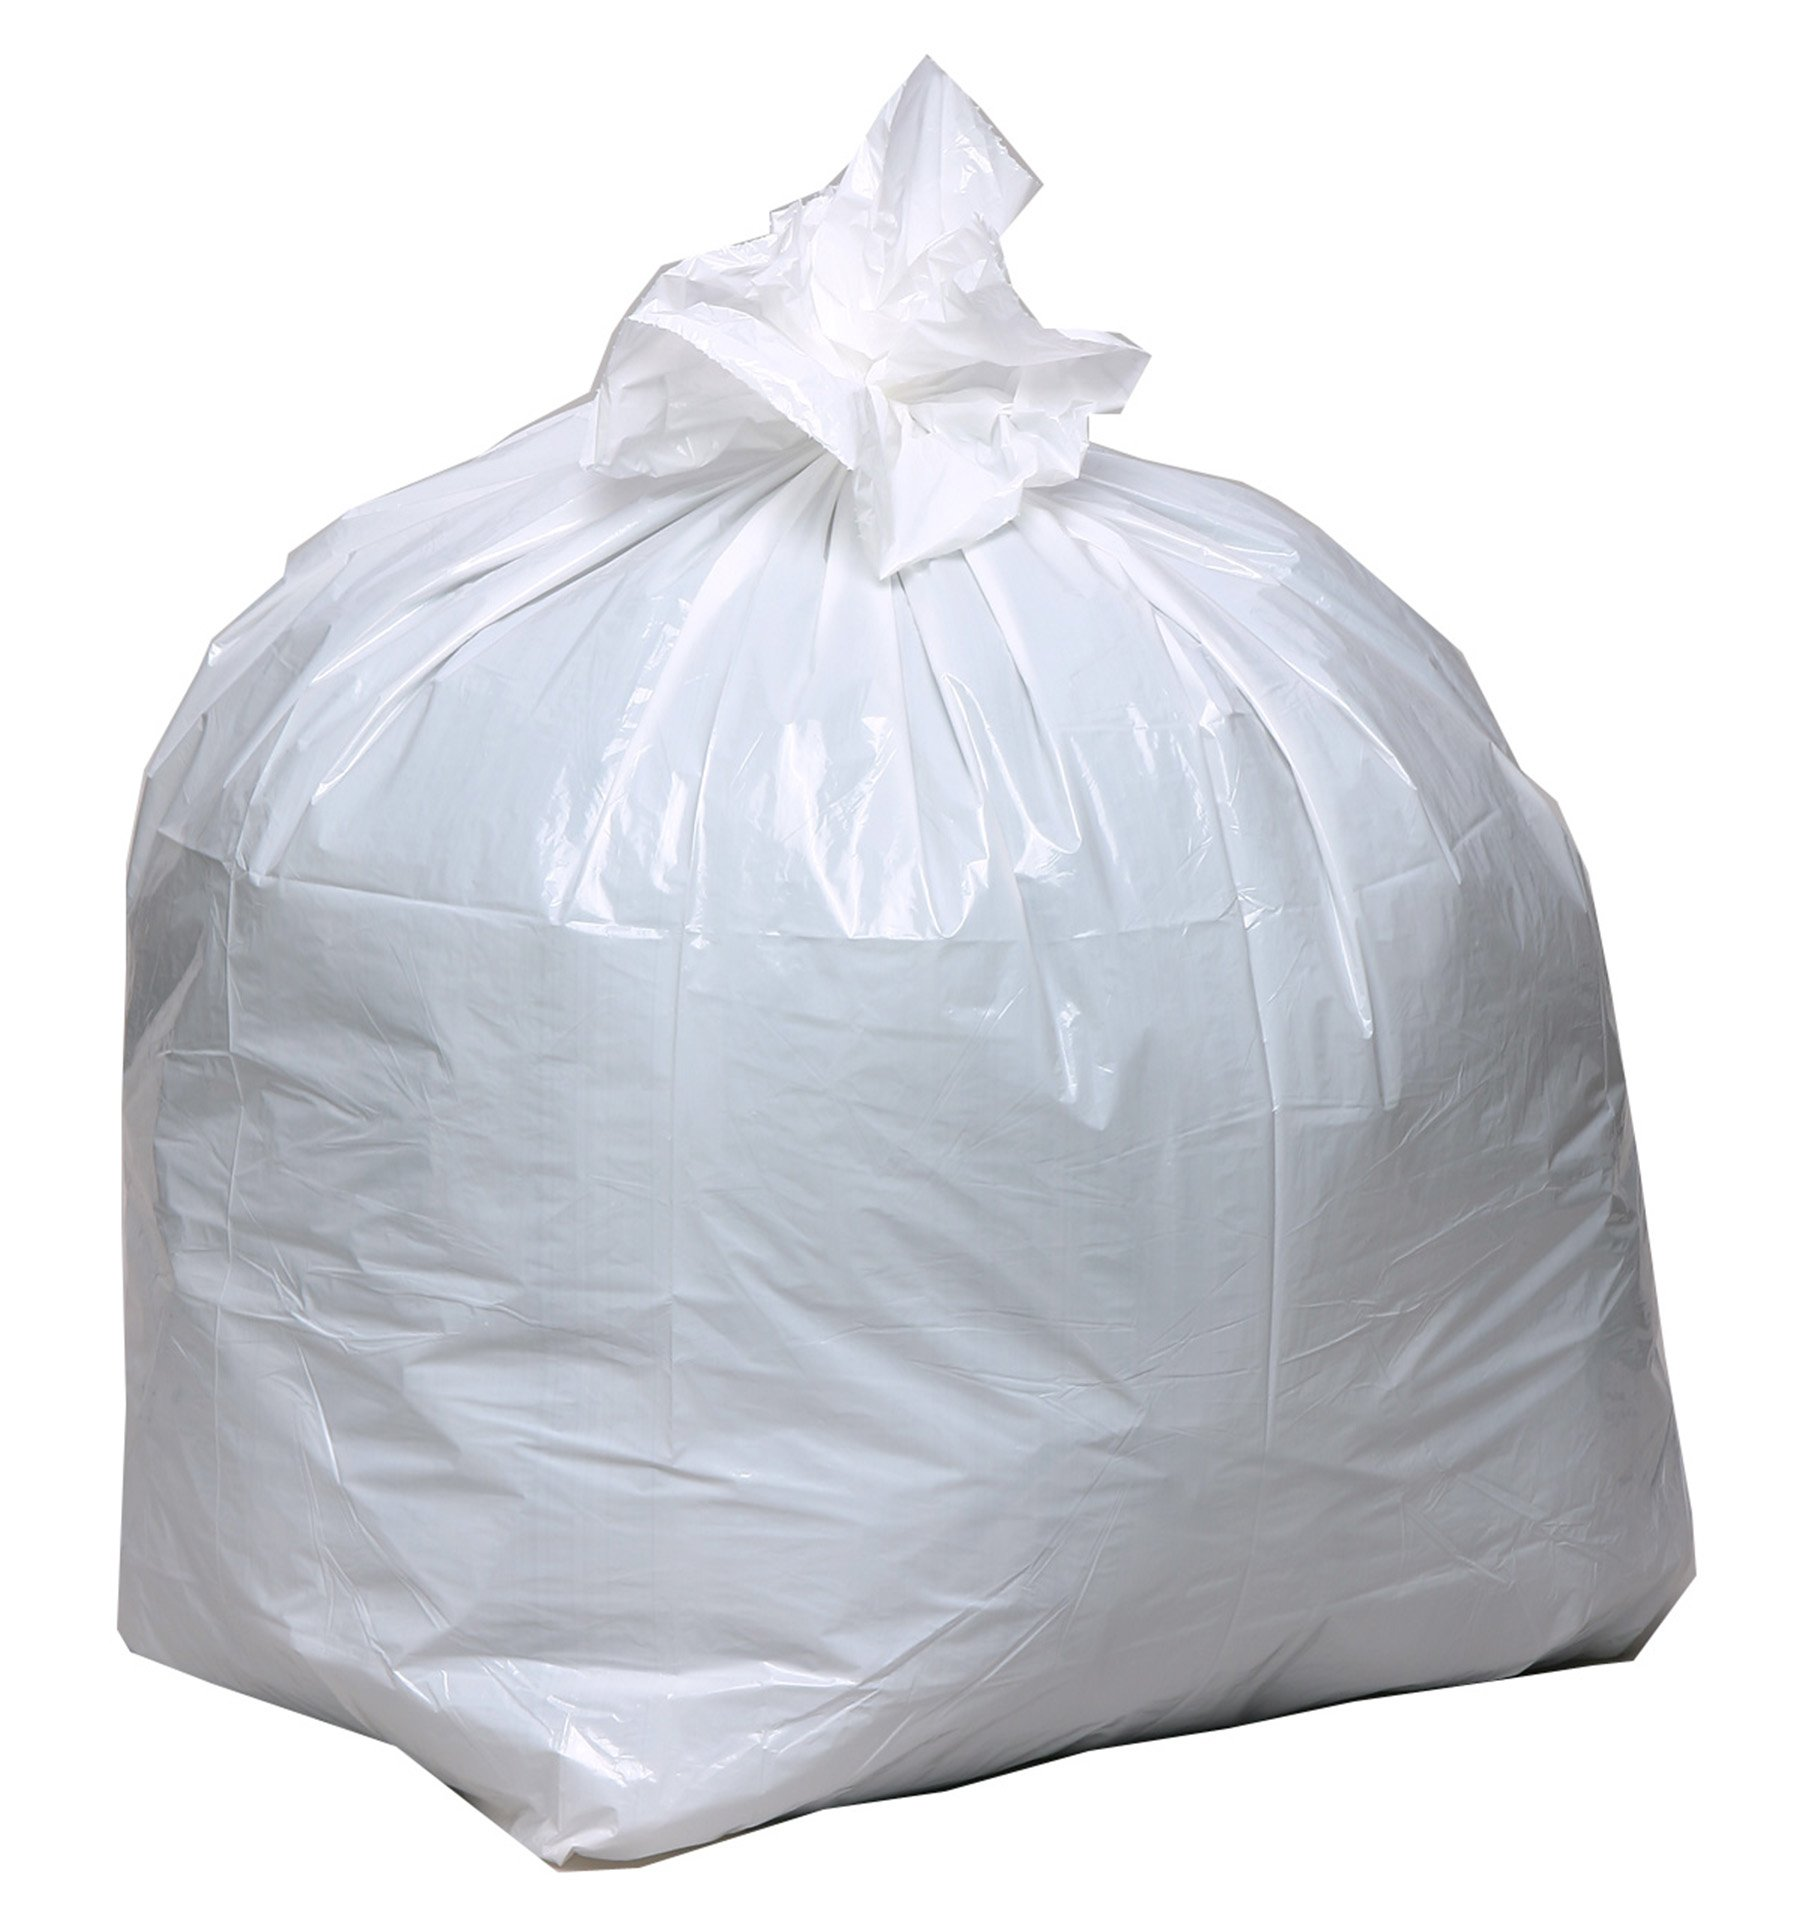 Earthsense Commercial RNW1K150V Recycled Tall Kitchen Bags, 13-16gal, .8mil, 24 x 33, White, 150 Bags per Box